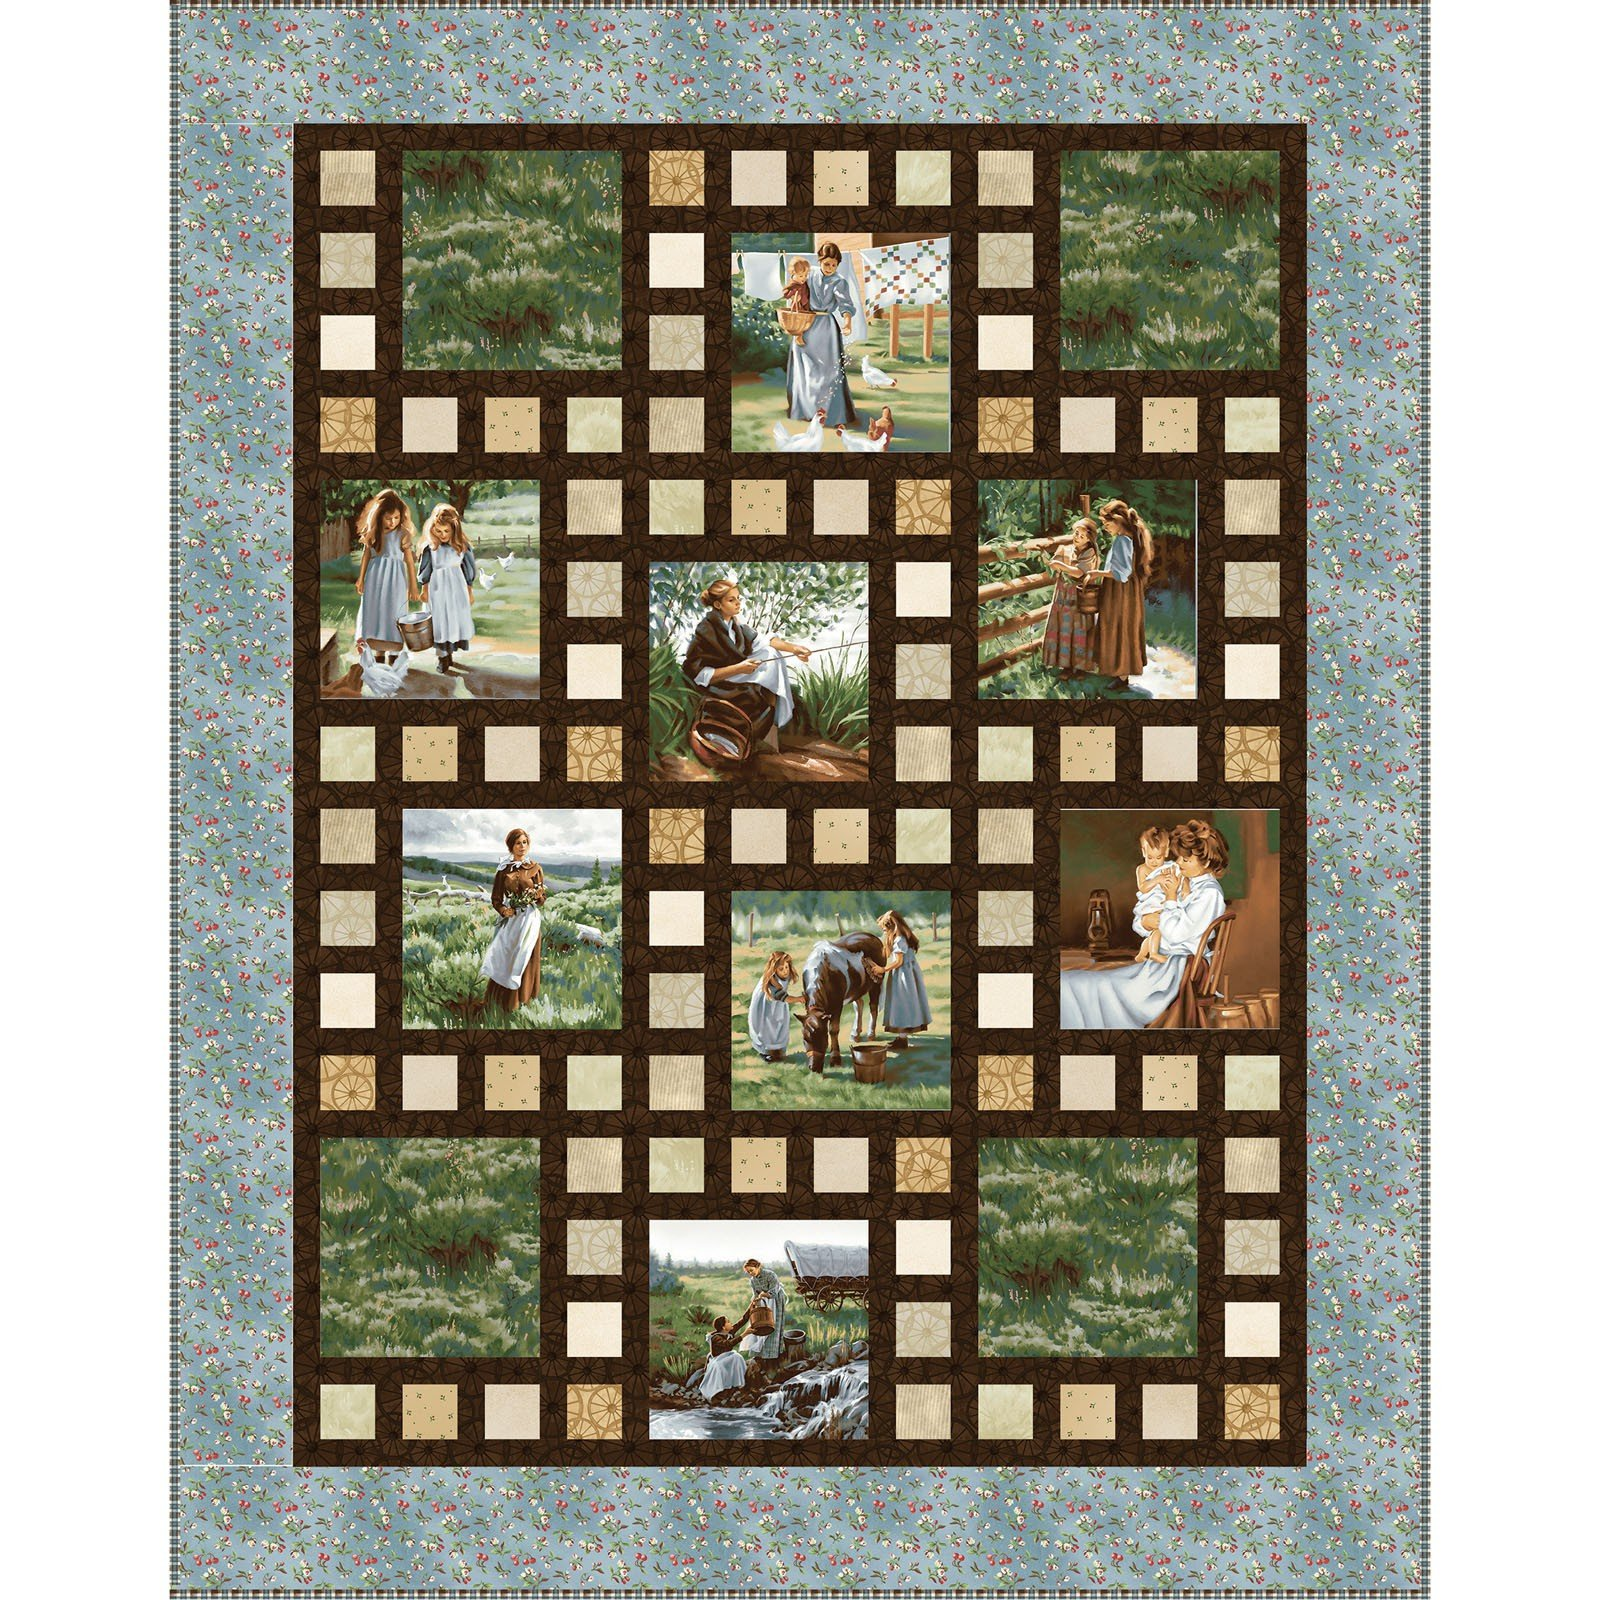 peace kit lancaster making pa wall kits love quilt for category online product joy complete